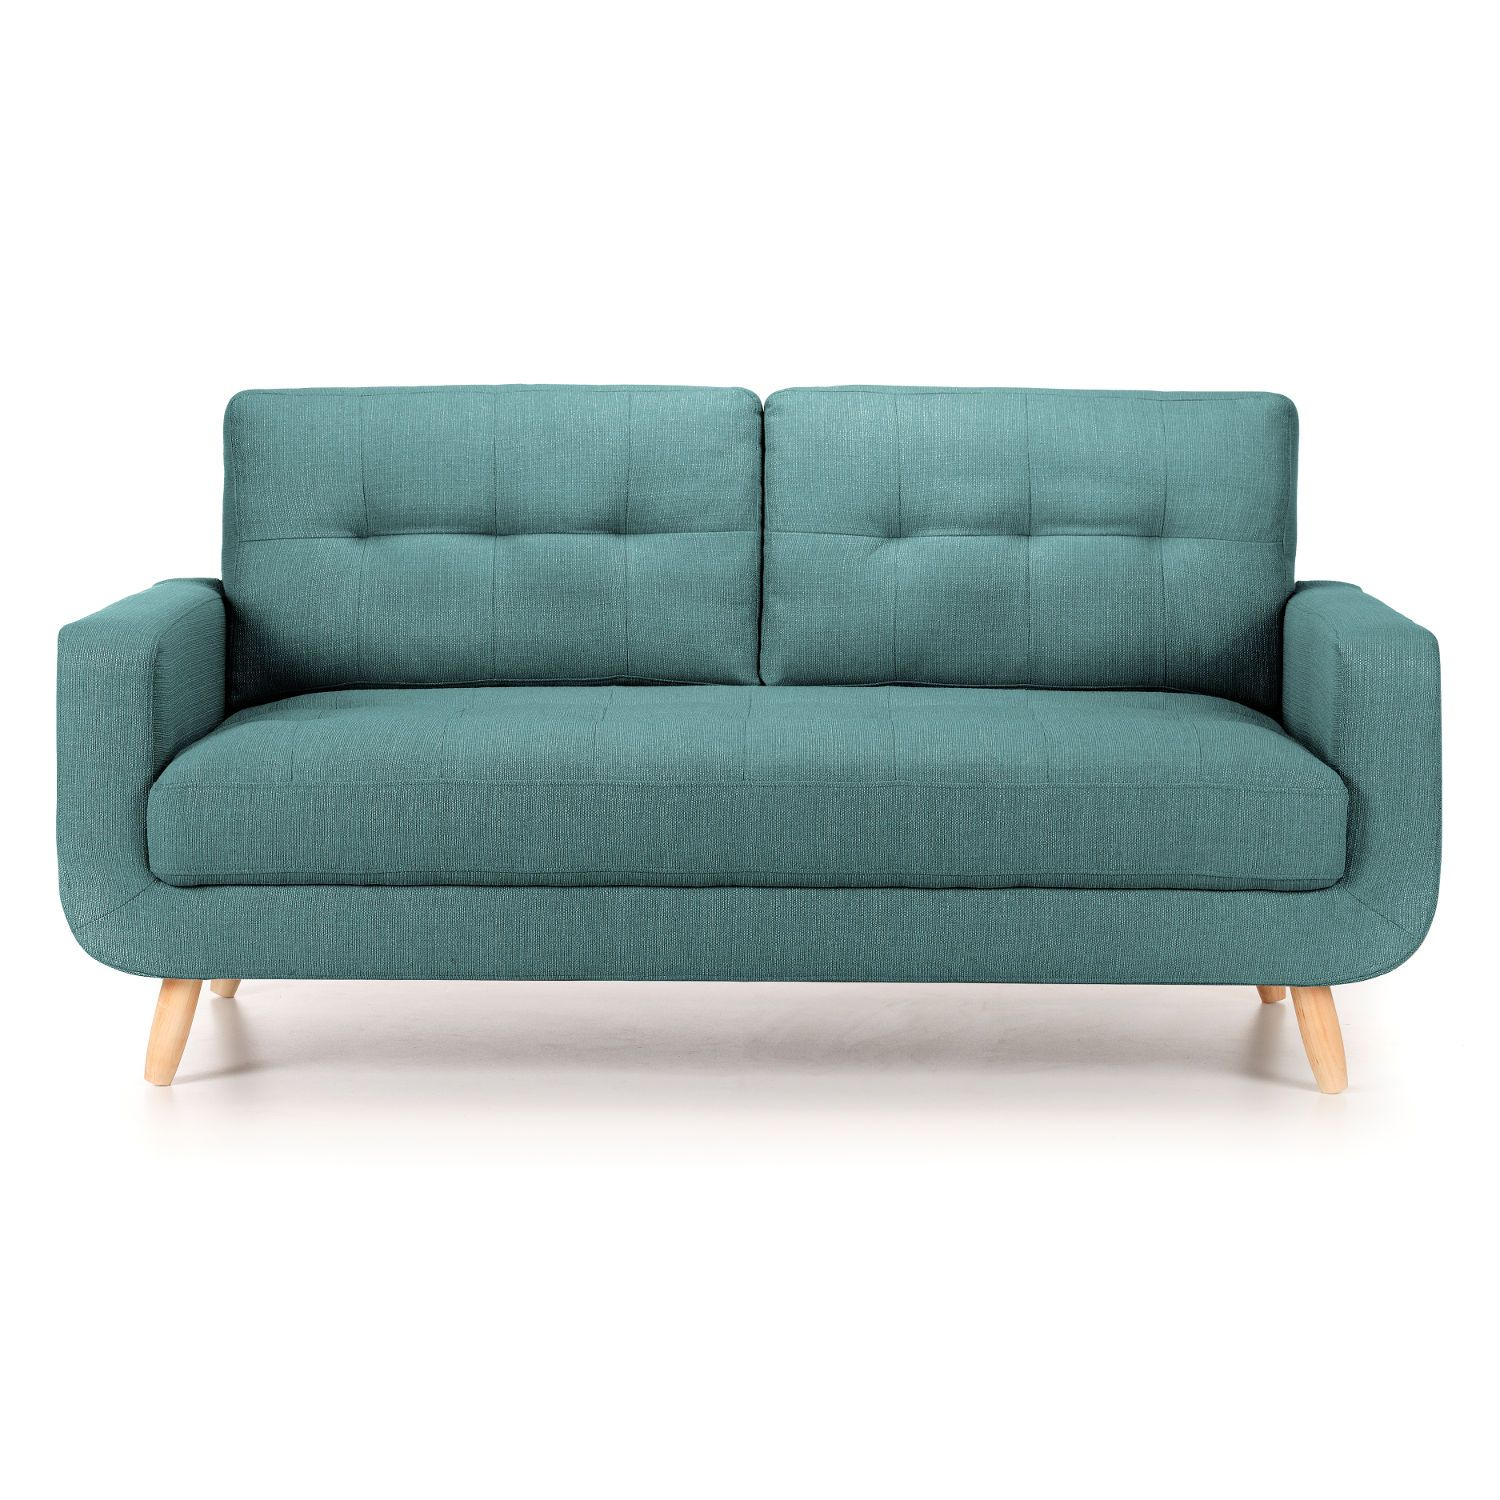 Hockney 3 Seater Fabric Sofa Next Day Delivery